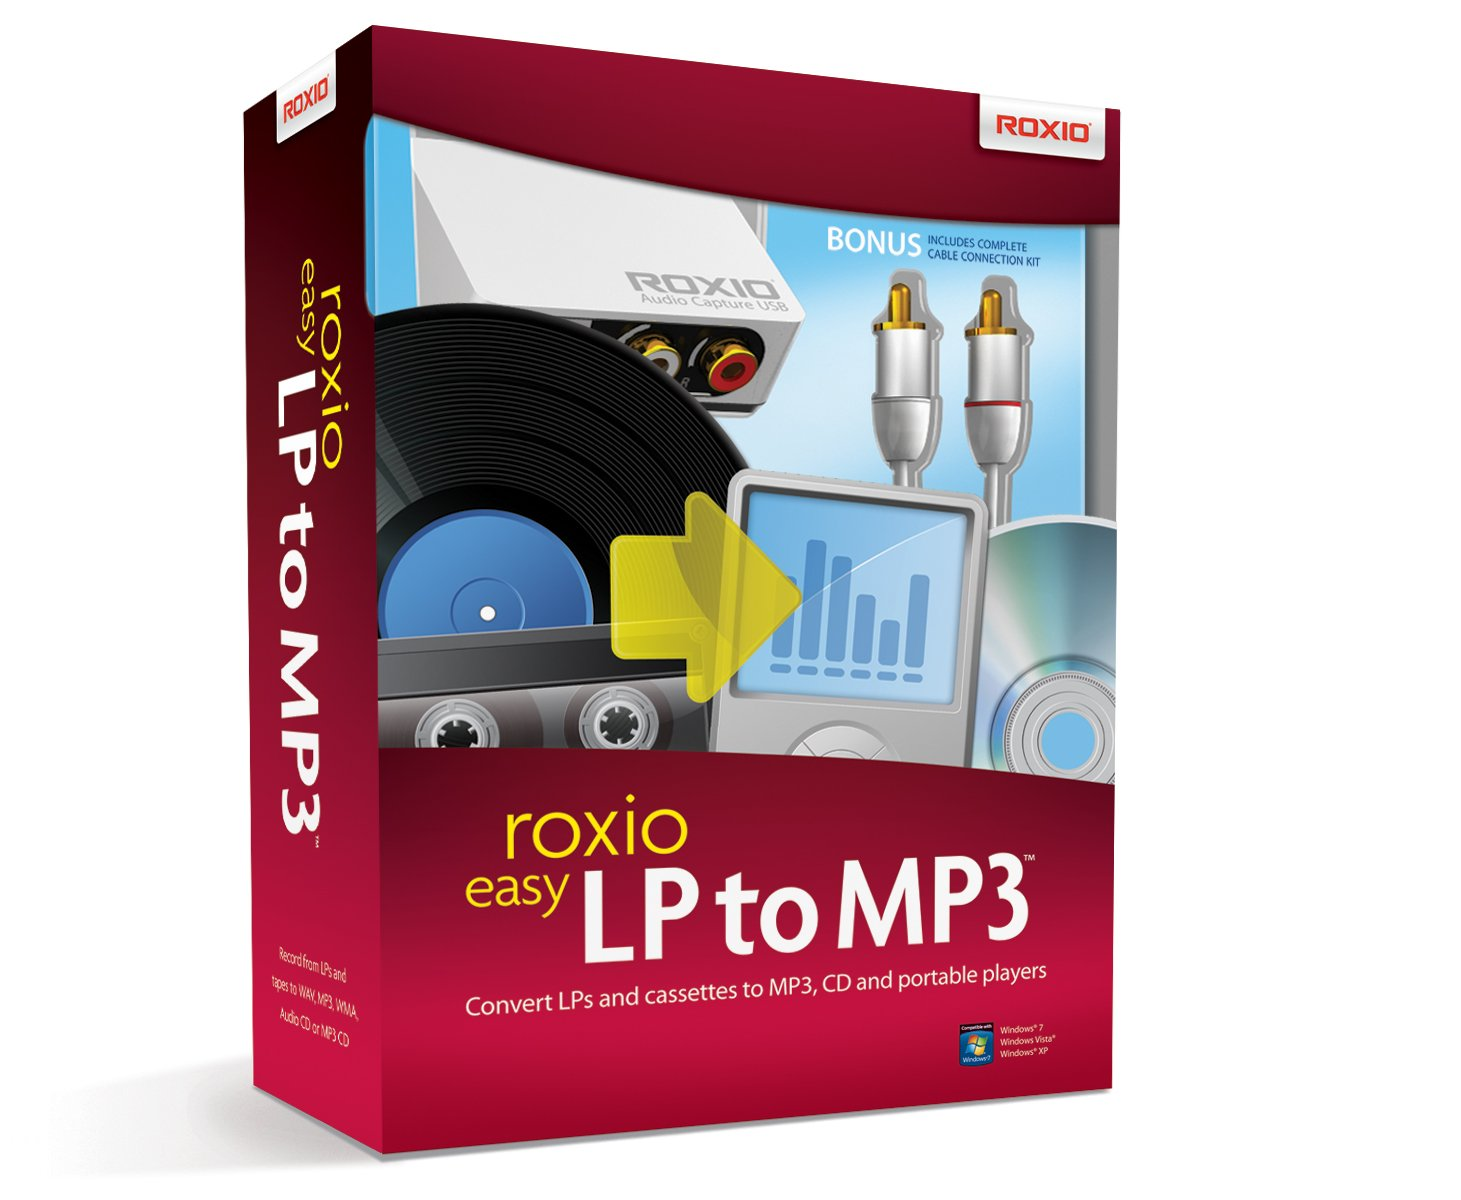 Roxio Easy LP to MP3 Audio Capture and Conversion Module and Software for PC by Roxio